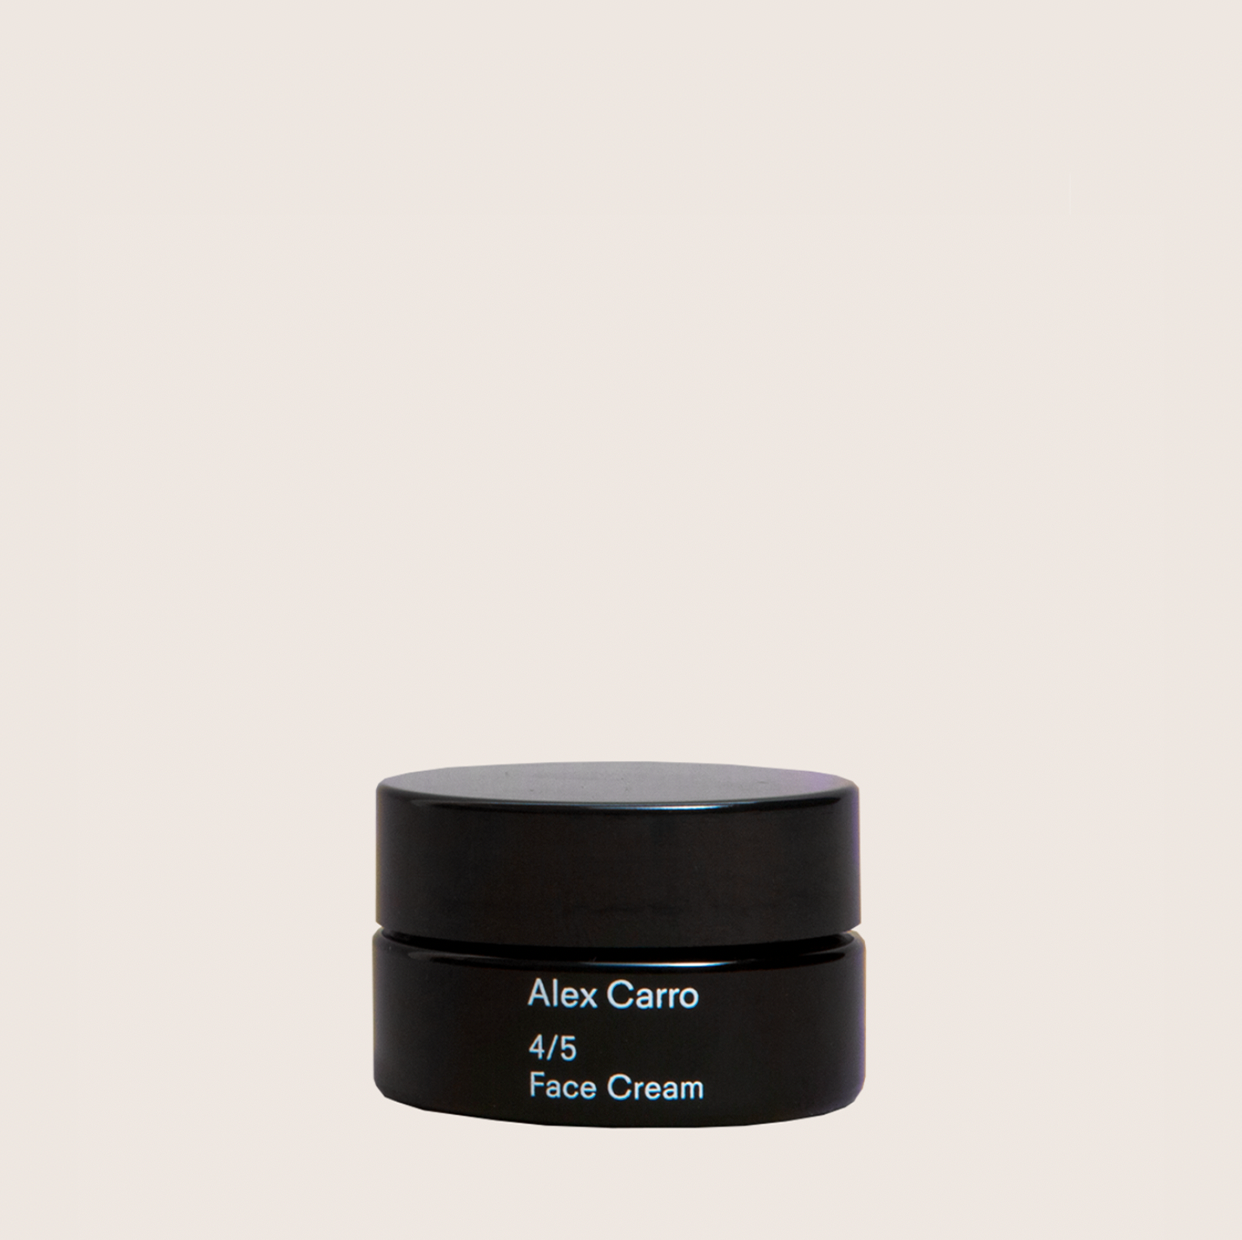 Face Cream Travel Size